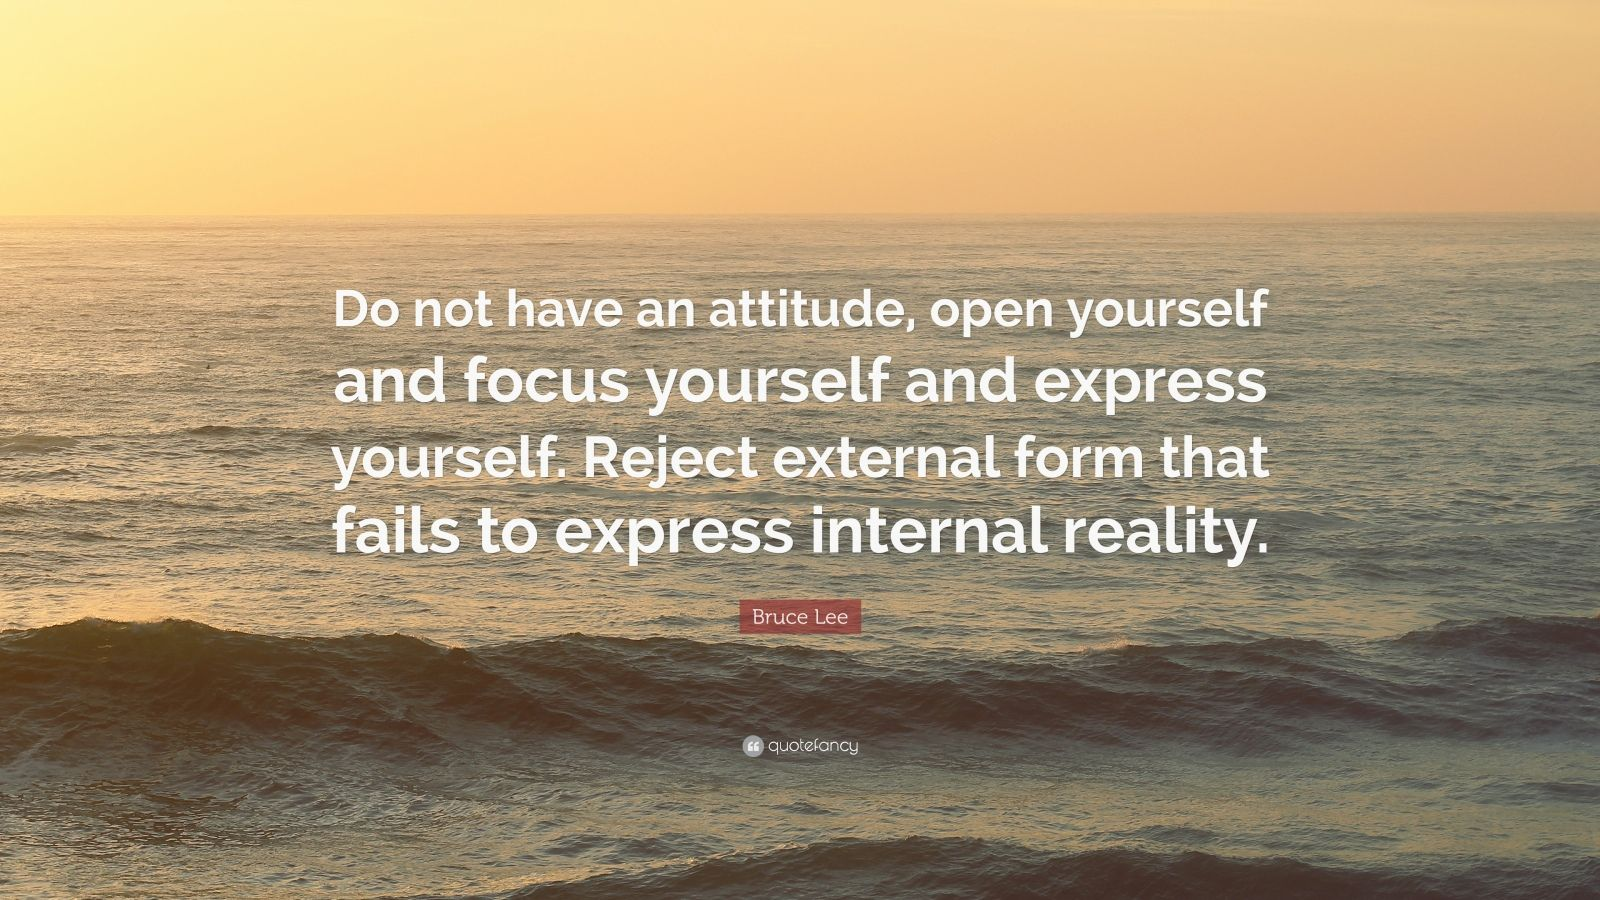 """Bruce Lee Quote: """"Do not have an attitude, open yourself and focus yourself and express yourself. Reject external form that fails to express internal reality."""""""